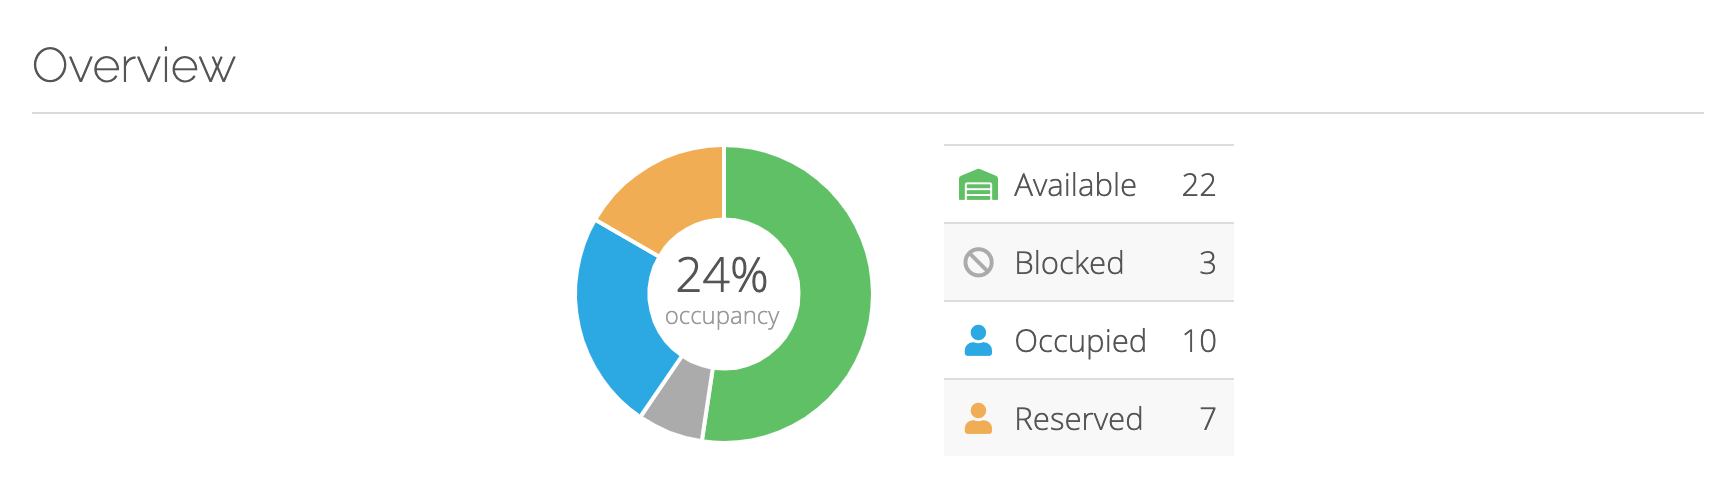 occupancy levels of the site